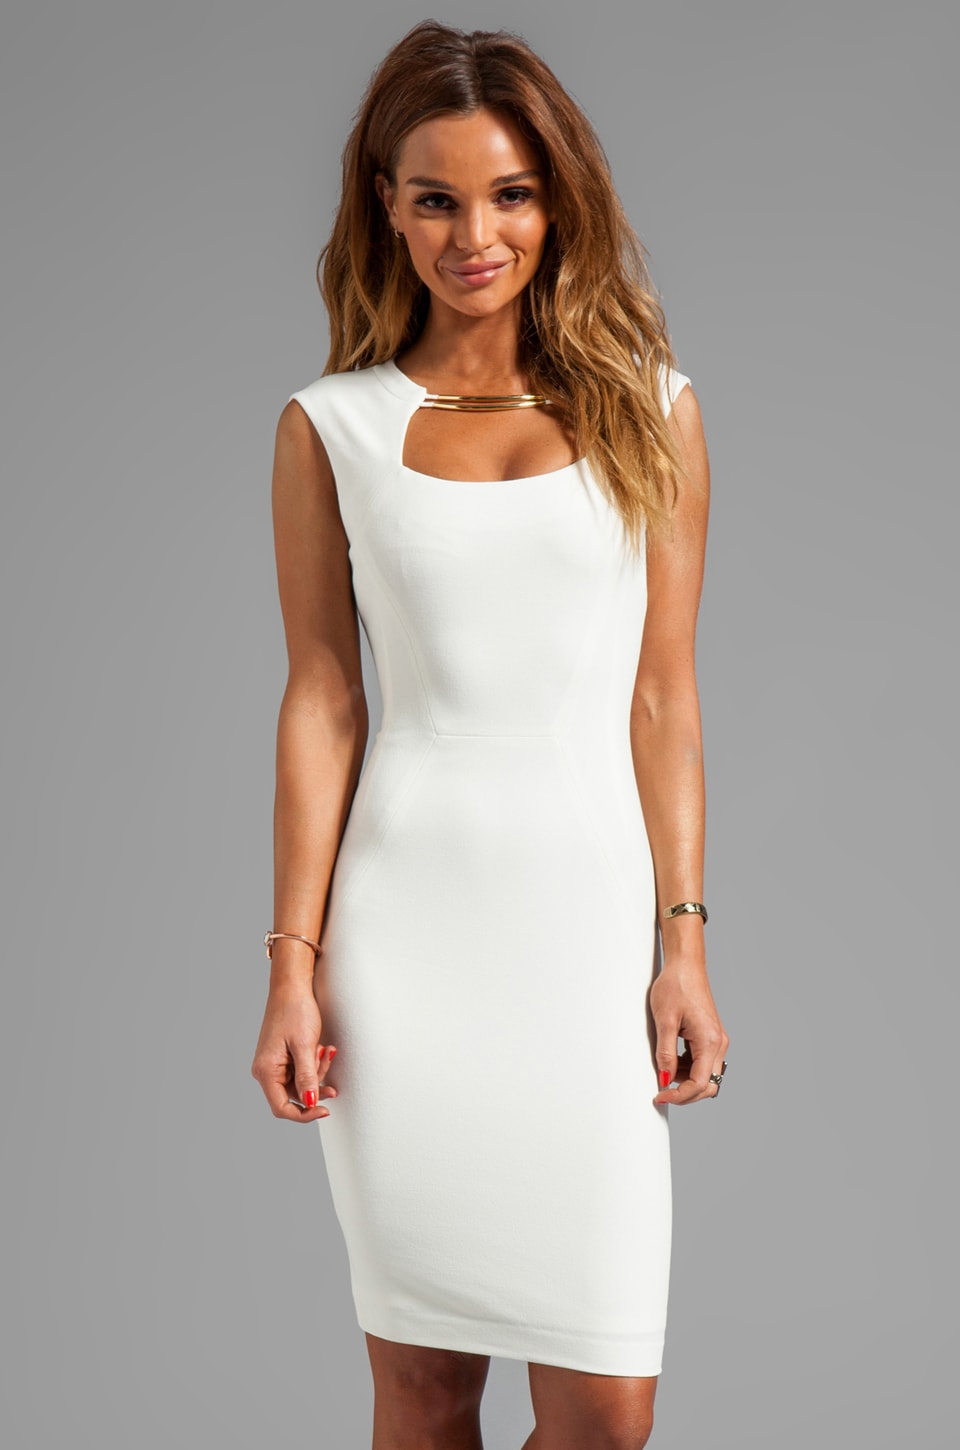 BCBGMAXAZRIA Sleeveless Body Con Dress en Blanc